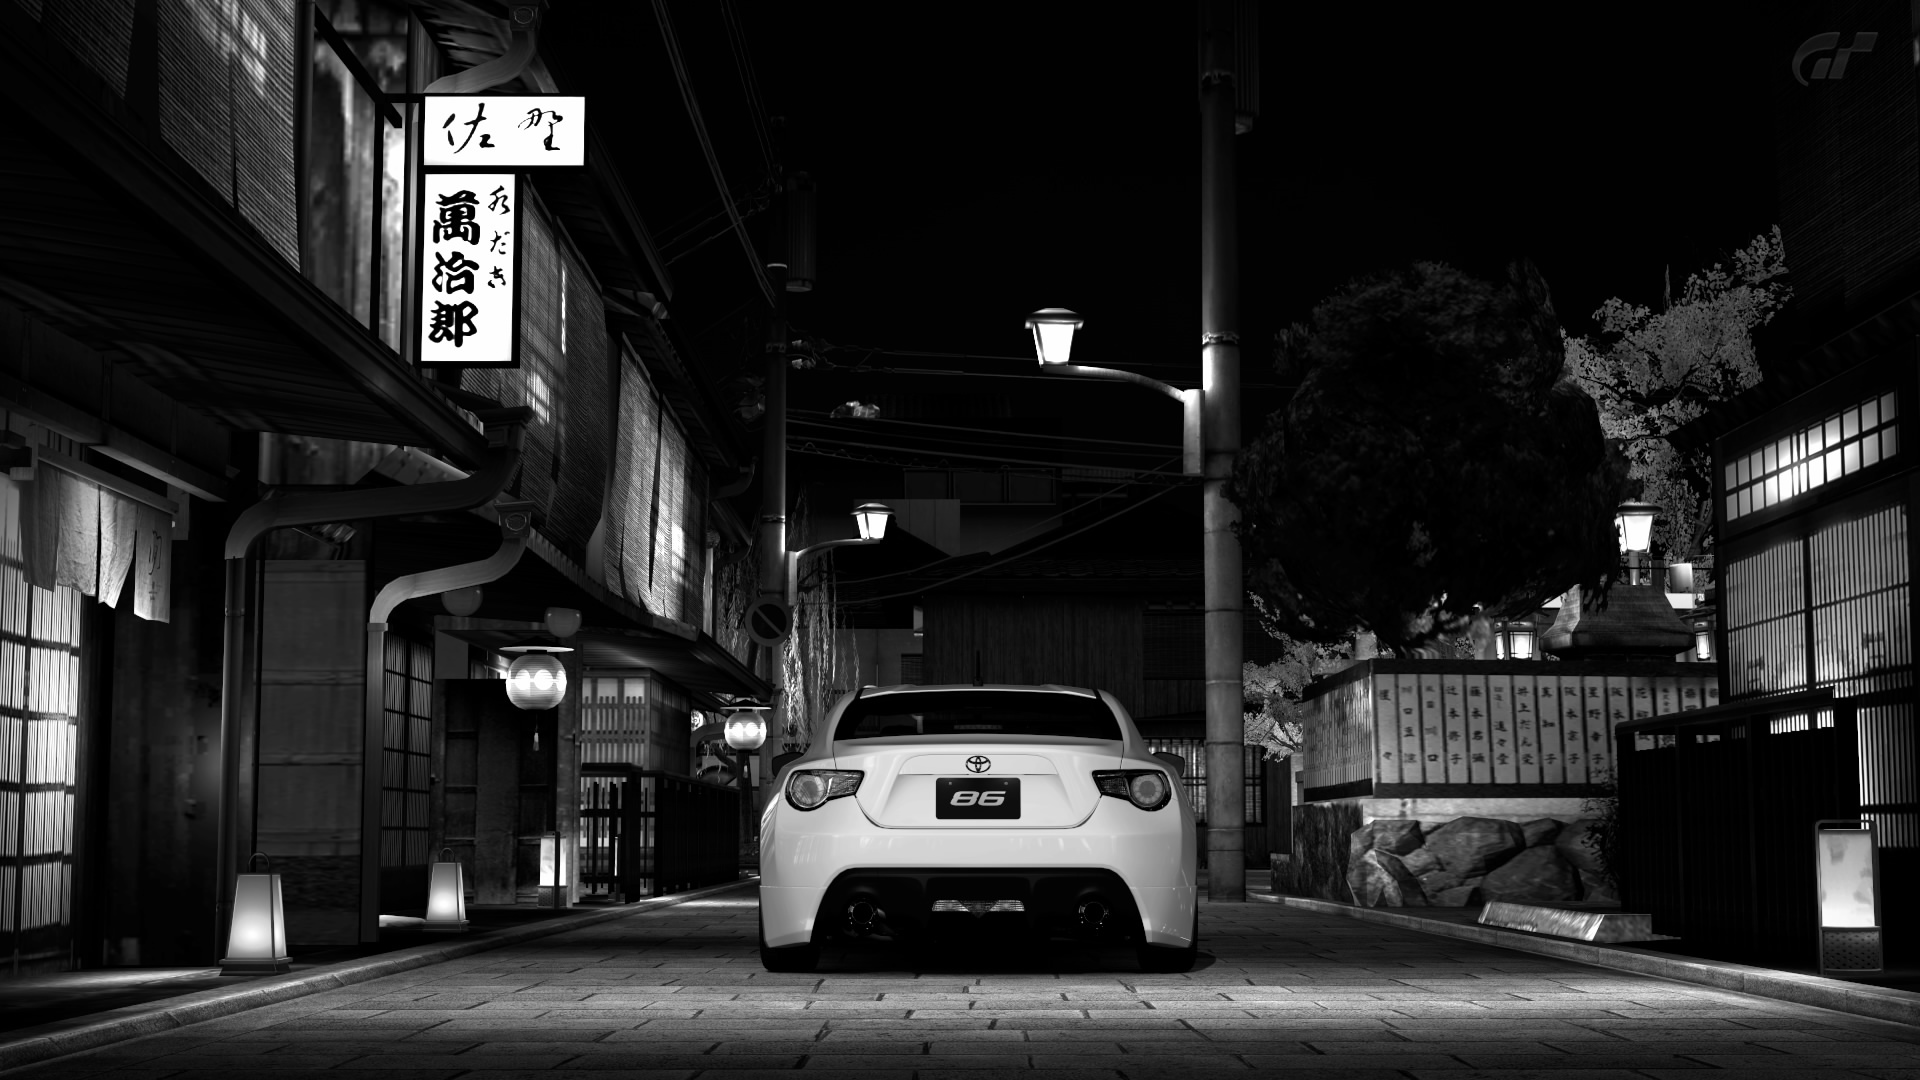 Wallpaper toyota gt und subaru brz mediagalerie - Car wallpaper black and white ...